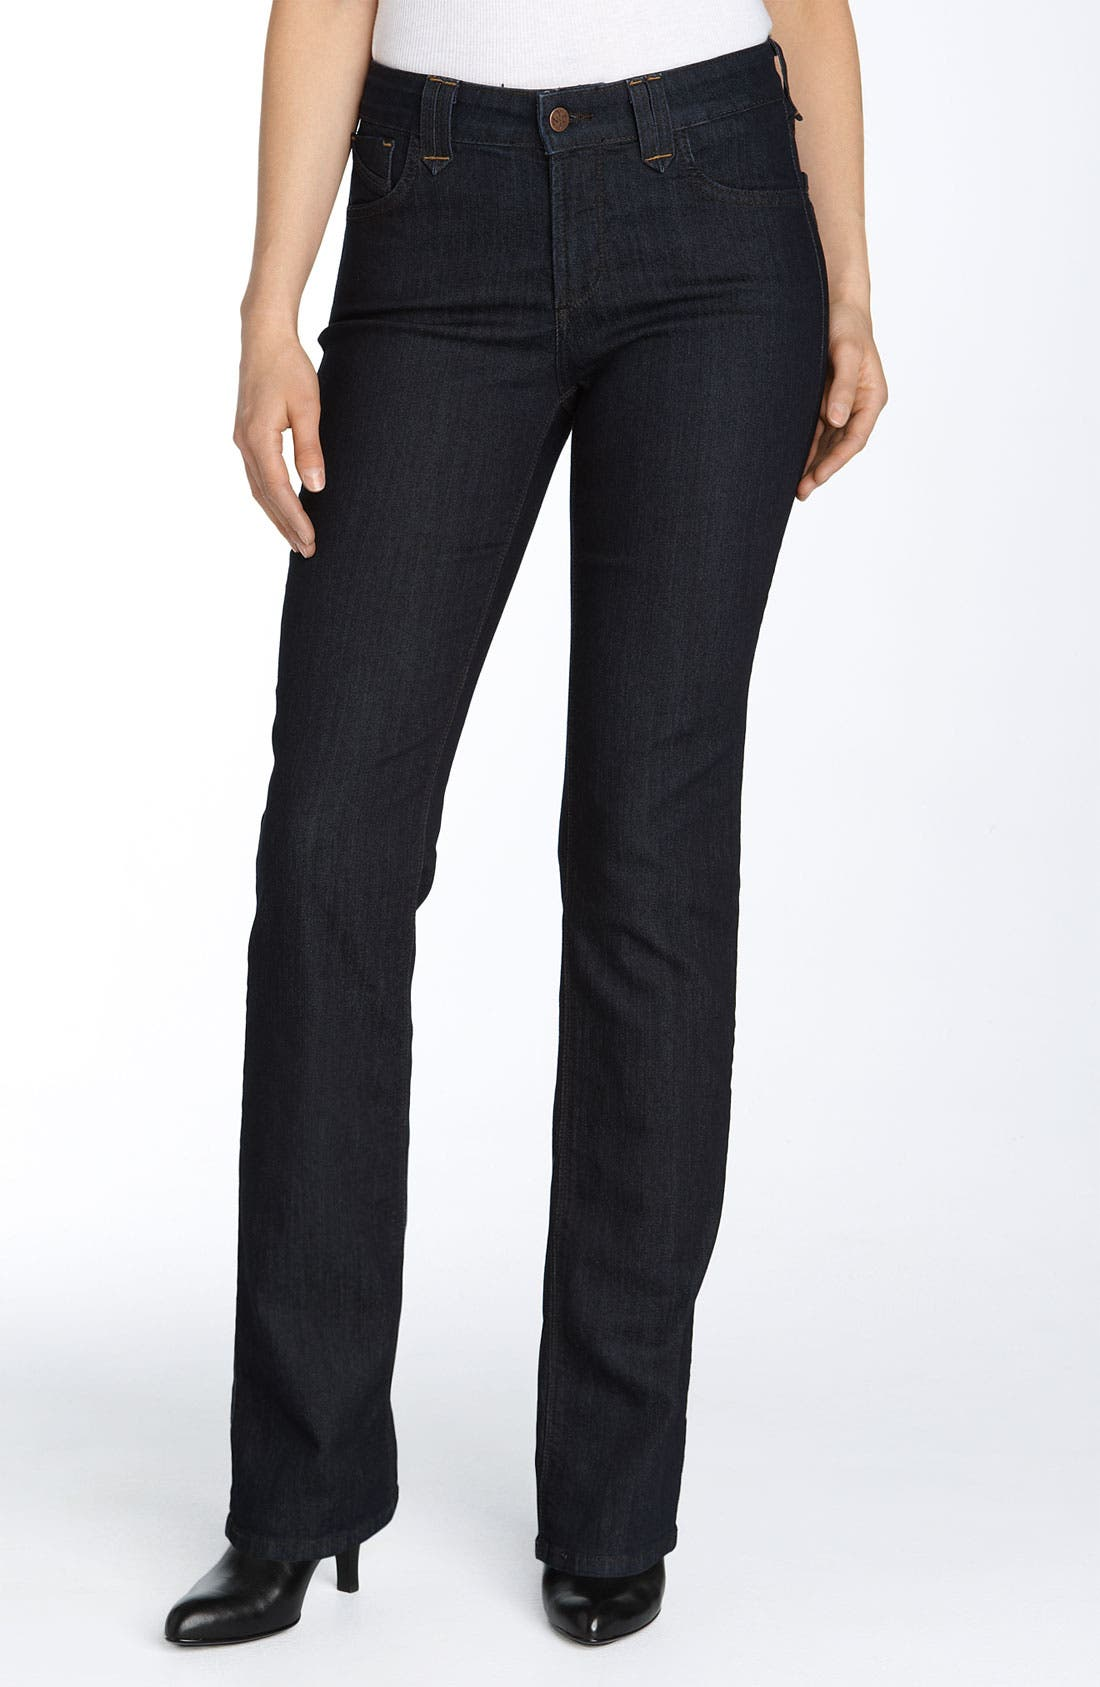 Alternate Image 1 Selected - NYDJ 'Hayden' Stretch Straight Leg Jeans (Resin)